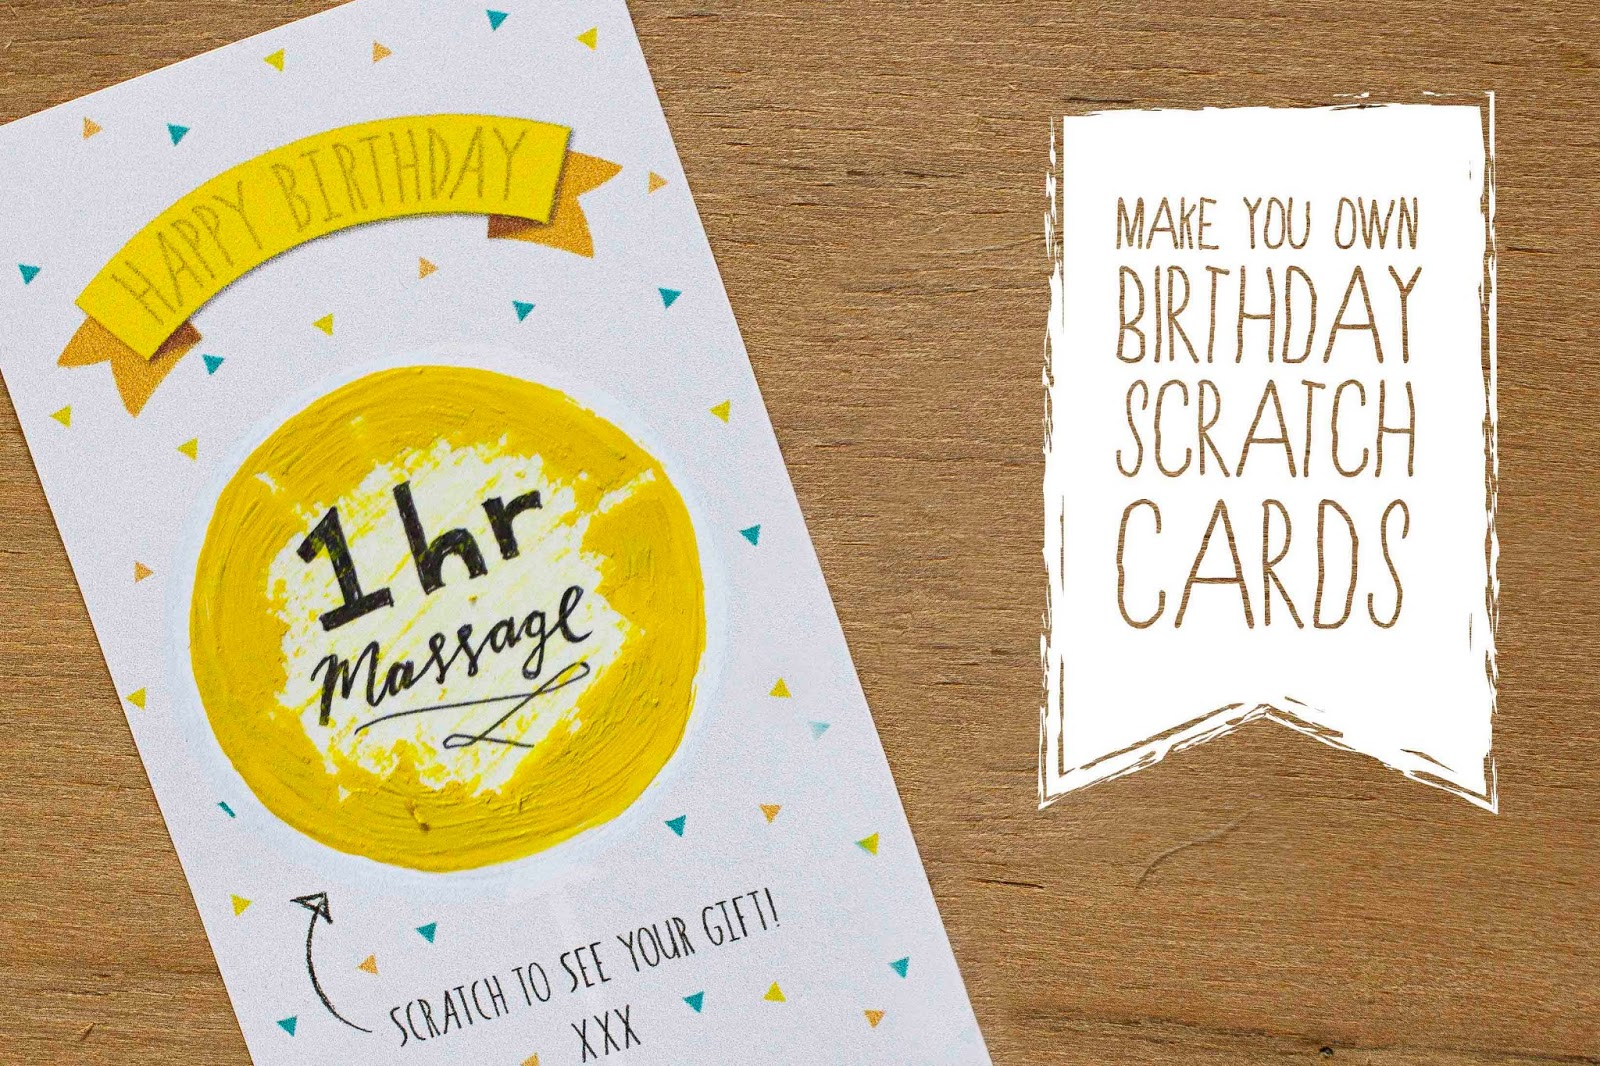 Birthday Scratch Card Diy on Garden Free Printables